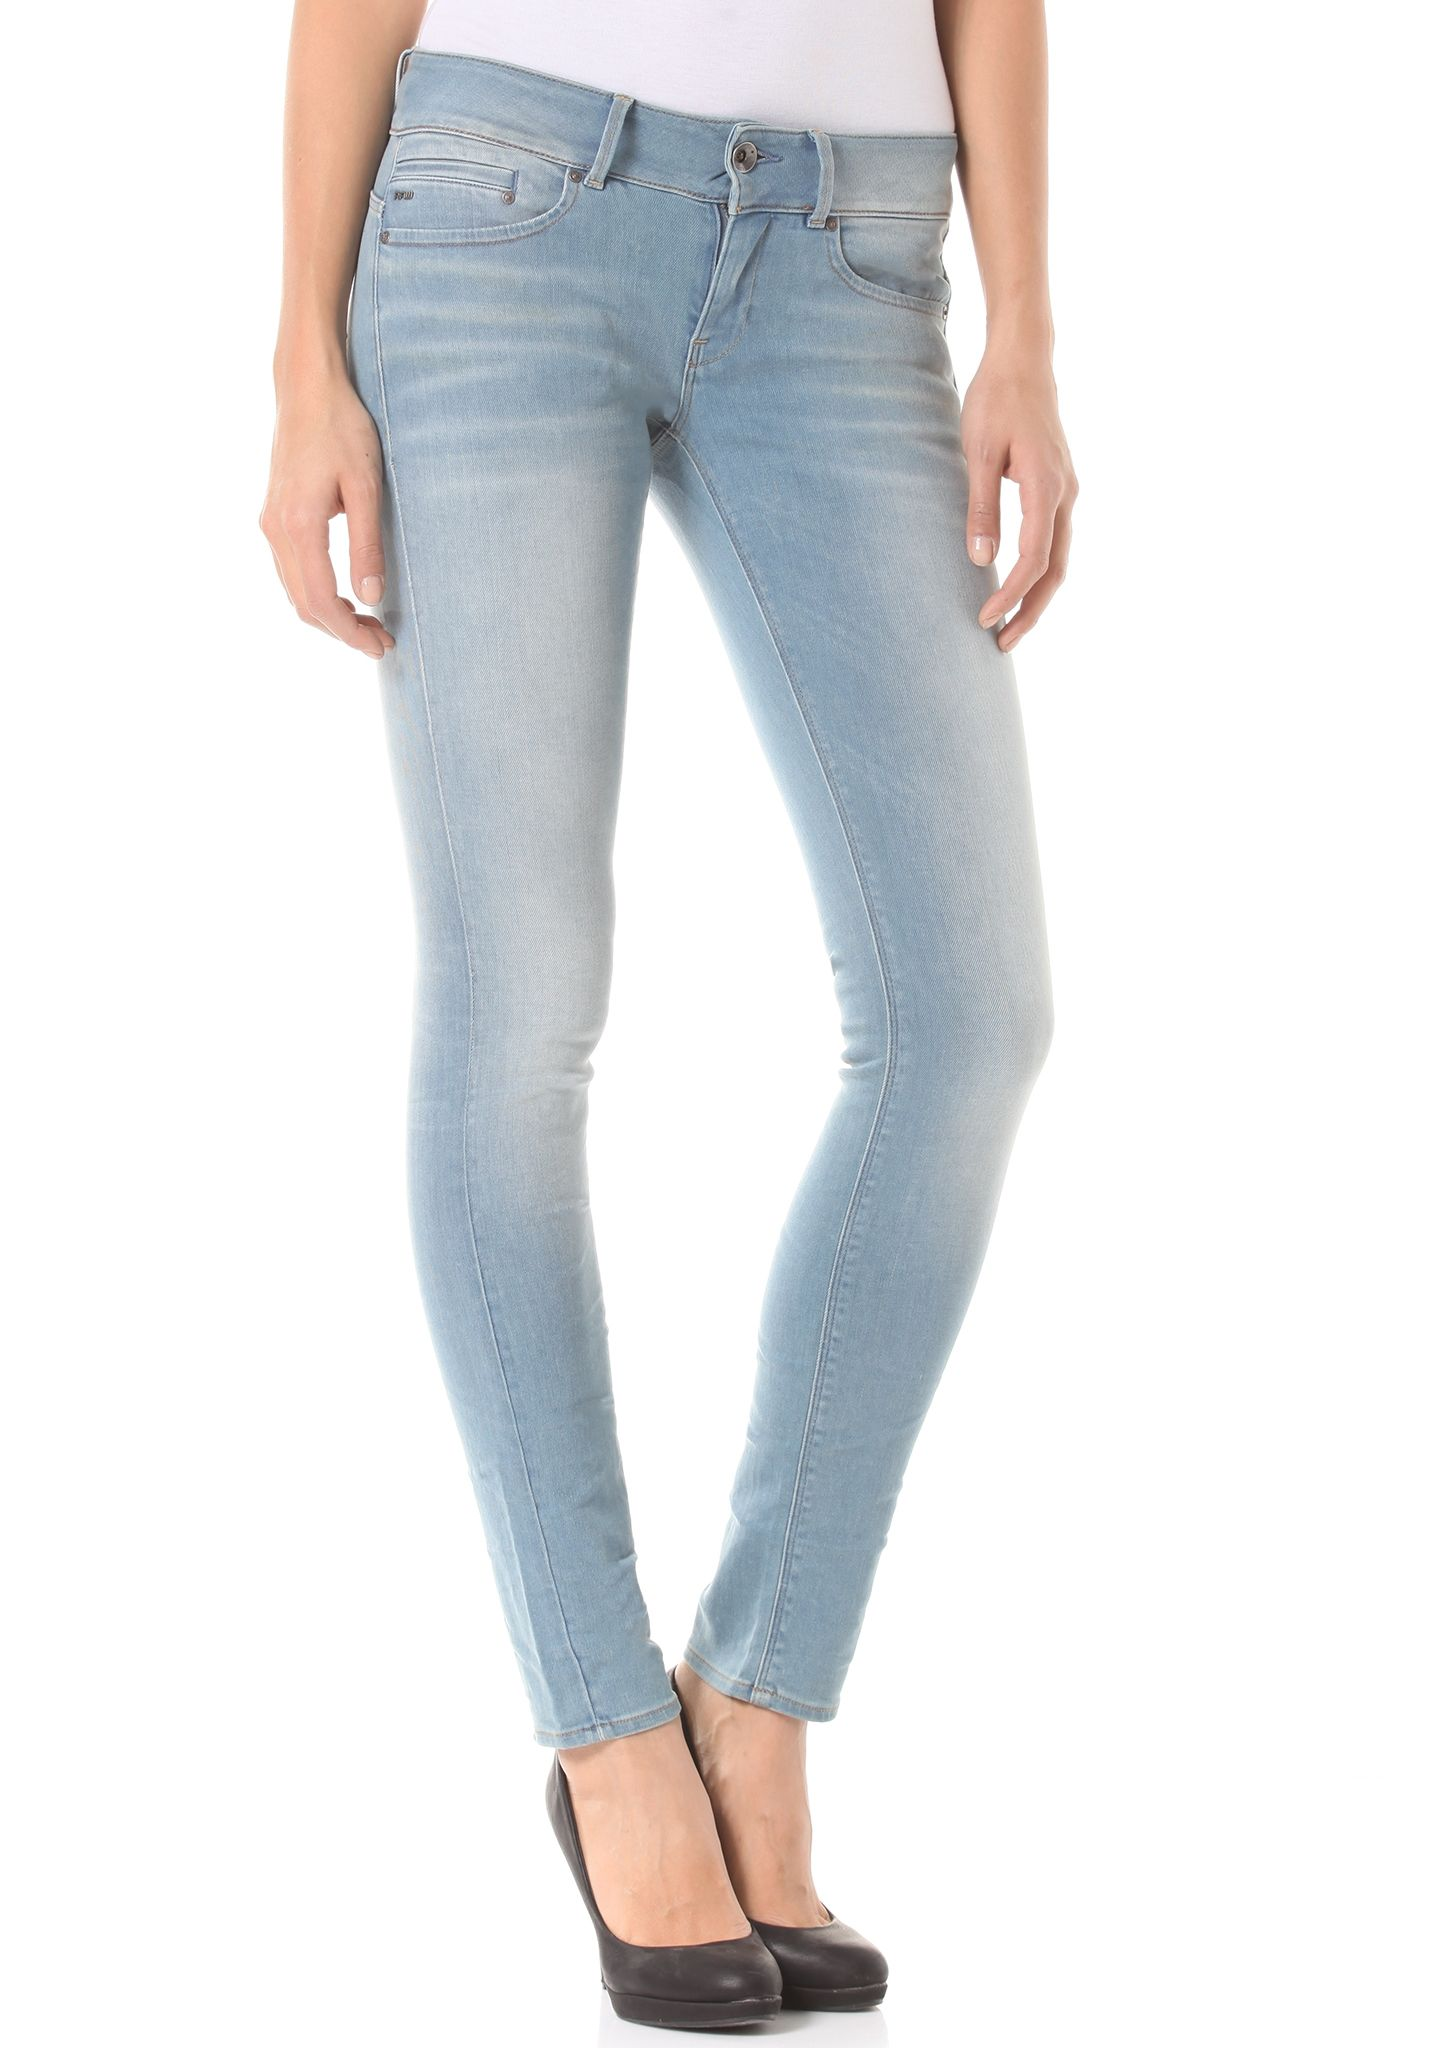 Ebay For Sale Womens Midge Cody Mid Wmn Skinny Jeans G-Star Discount New Largest Supplier Sale Online Outlet Big Sale hwRsI7QRb